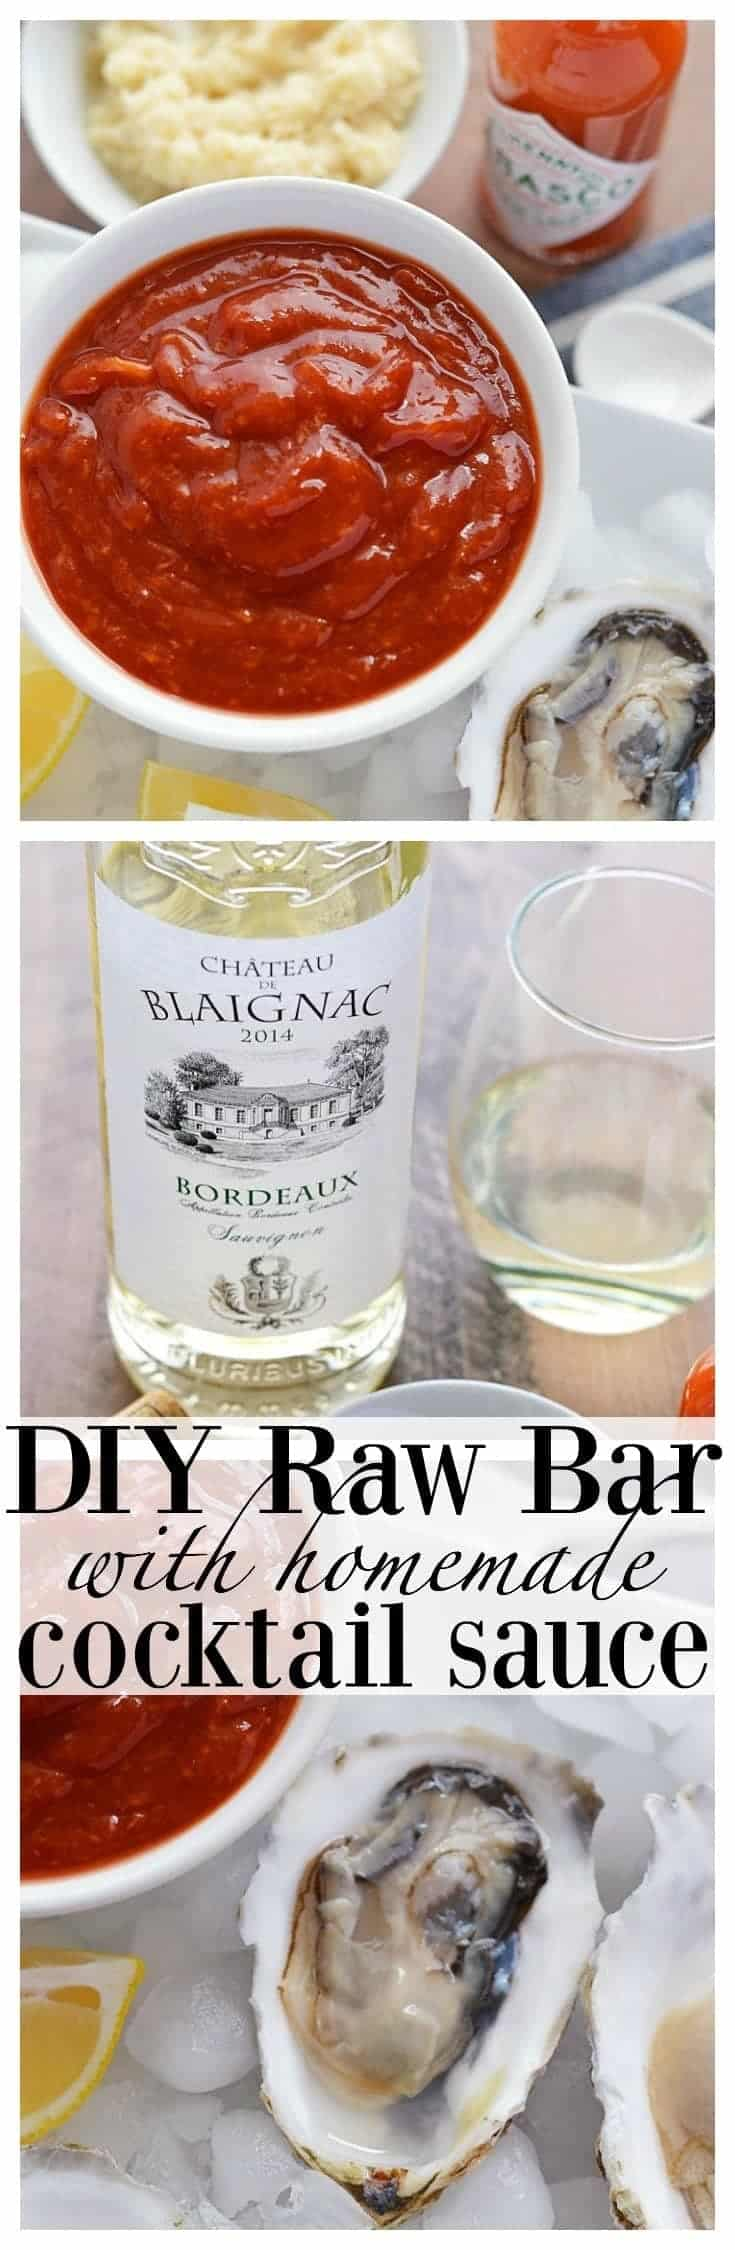 DIY Raw Bar with Homemade Cocktail Sauce and Bordeaux Wine from What The Fork Food Blog | whattheforkfoodblog.com